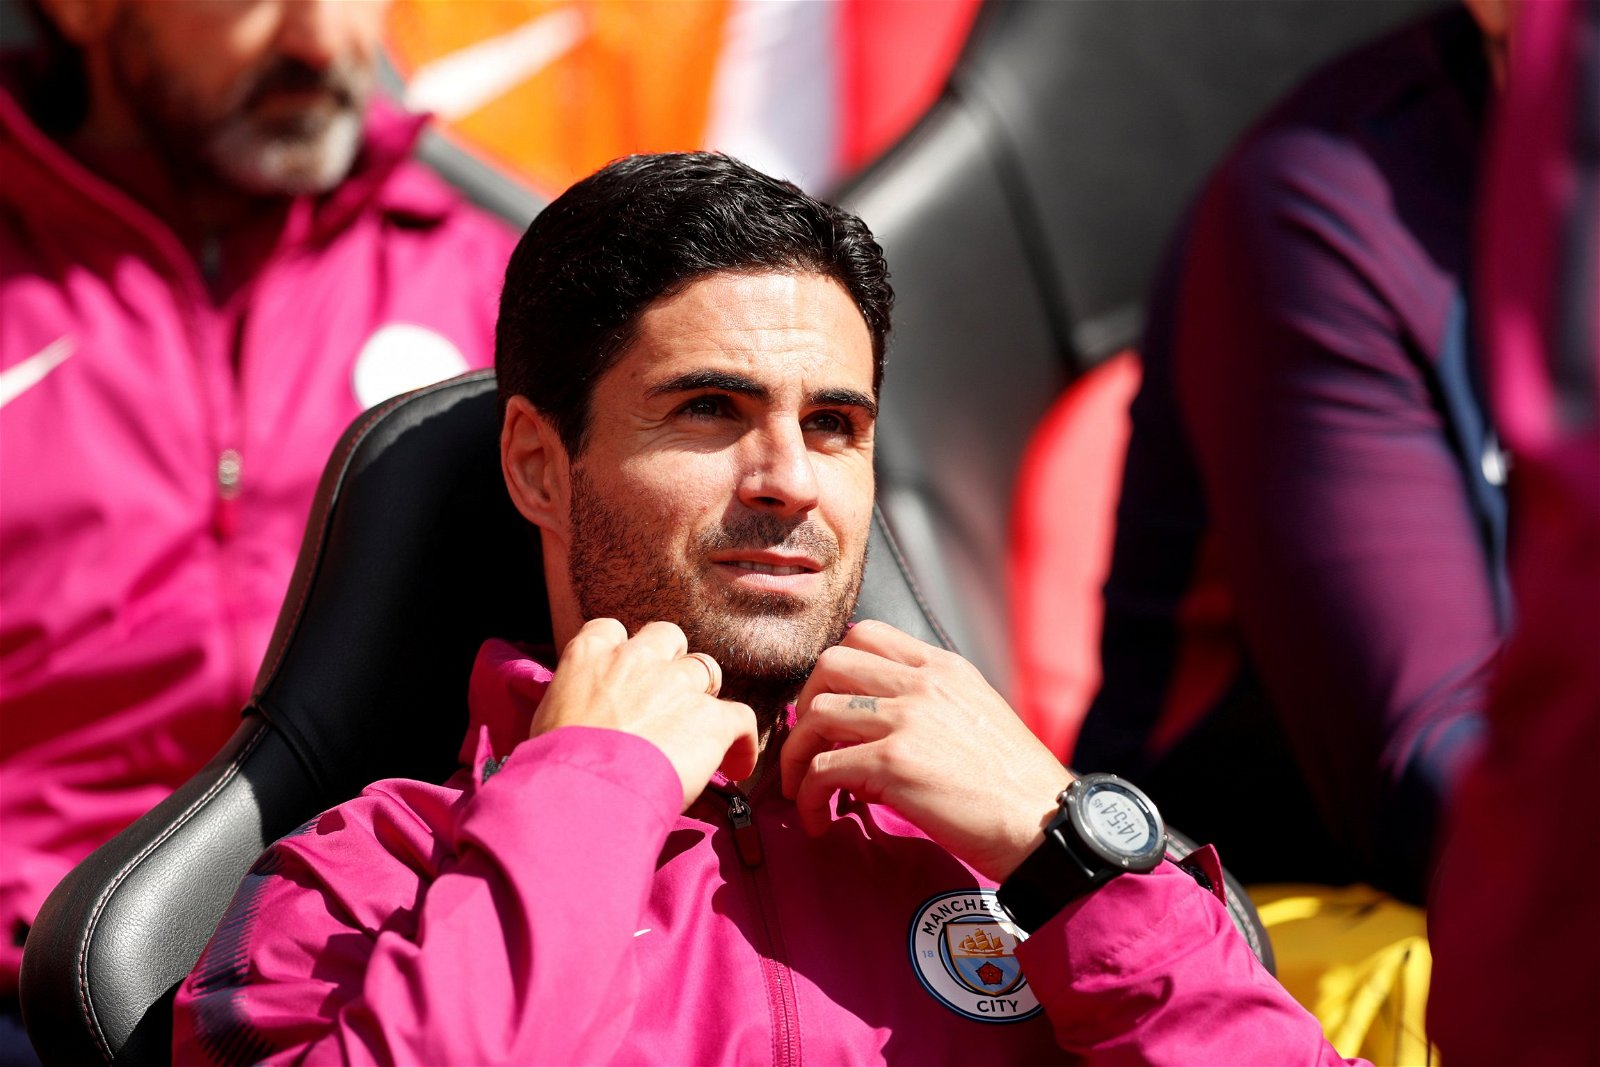 Mikel Arteta on Manchester City's bench for their Premier League game against Southampton